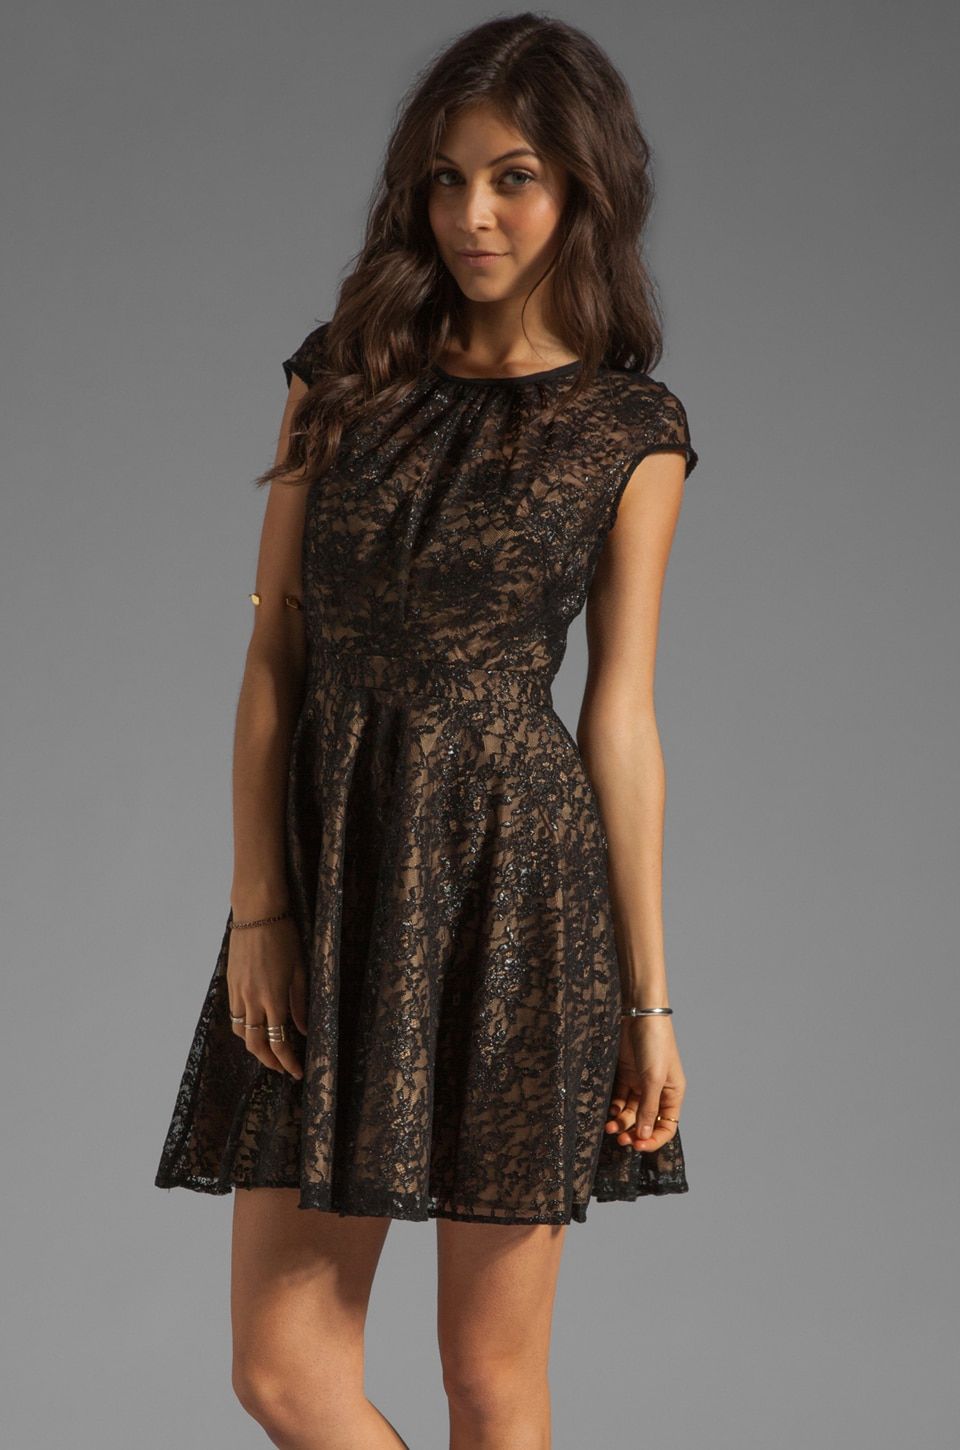 Shoshanna Floral Metallic Lace Heidi Dress in Black